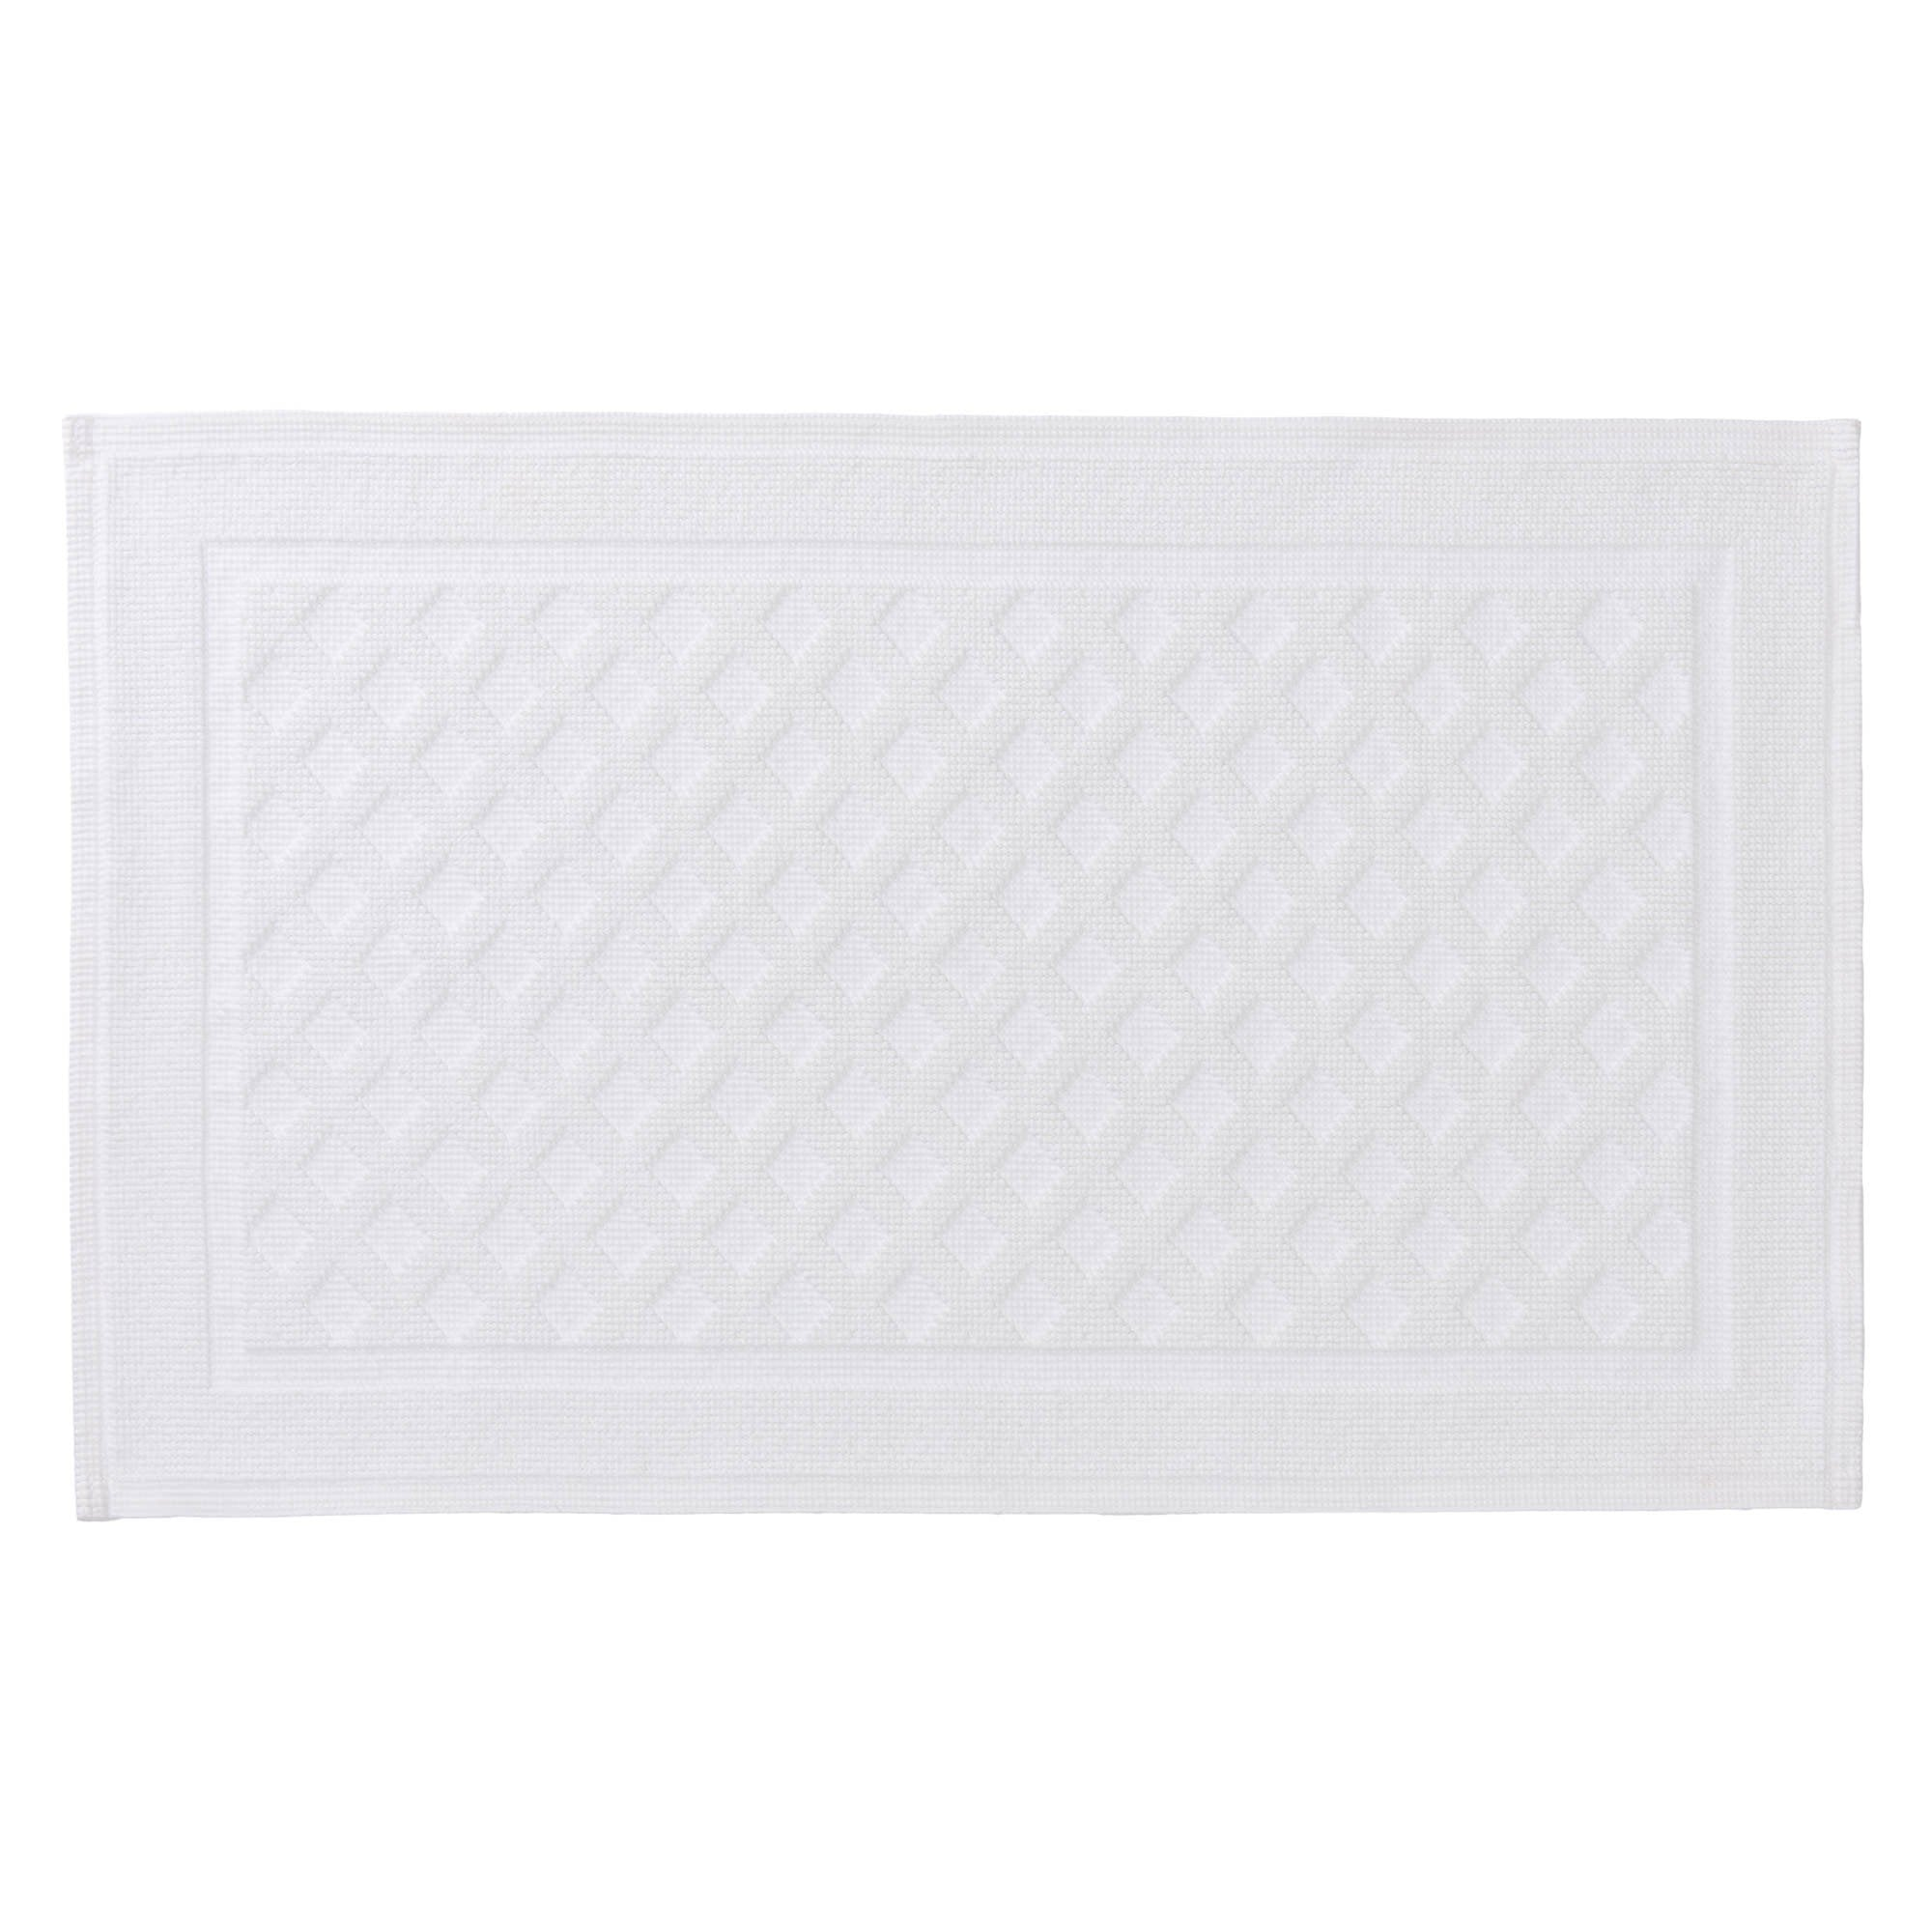 Osuna bath mat, white, 100% cotton